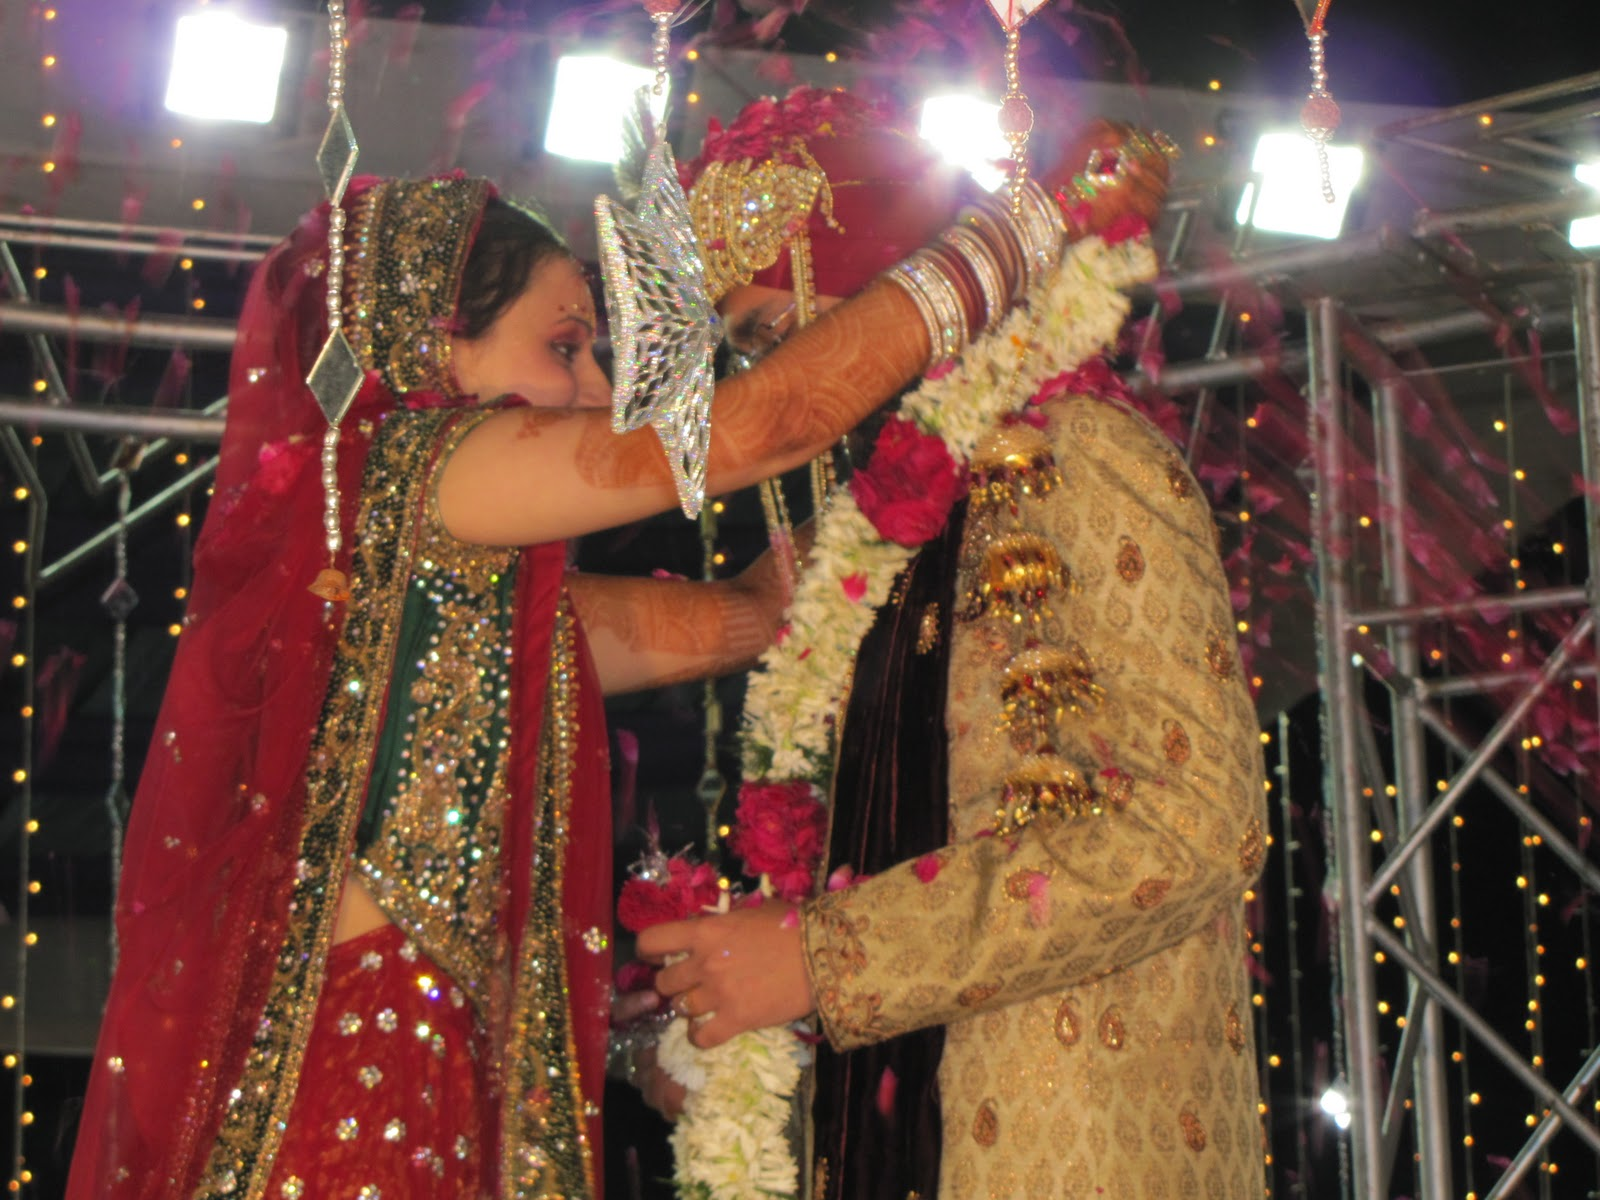 From saris to safaris: An Indian Wedding